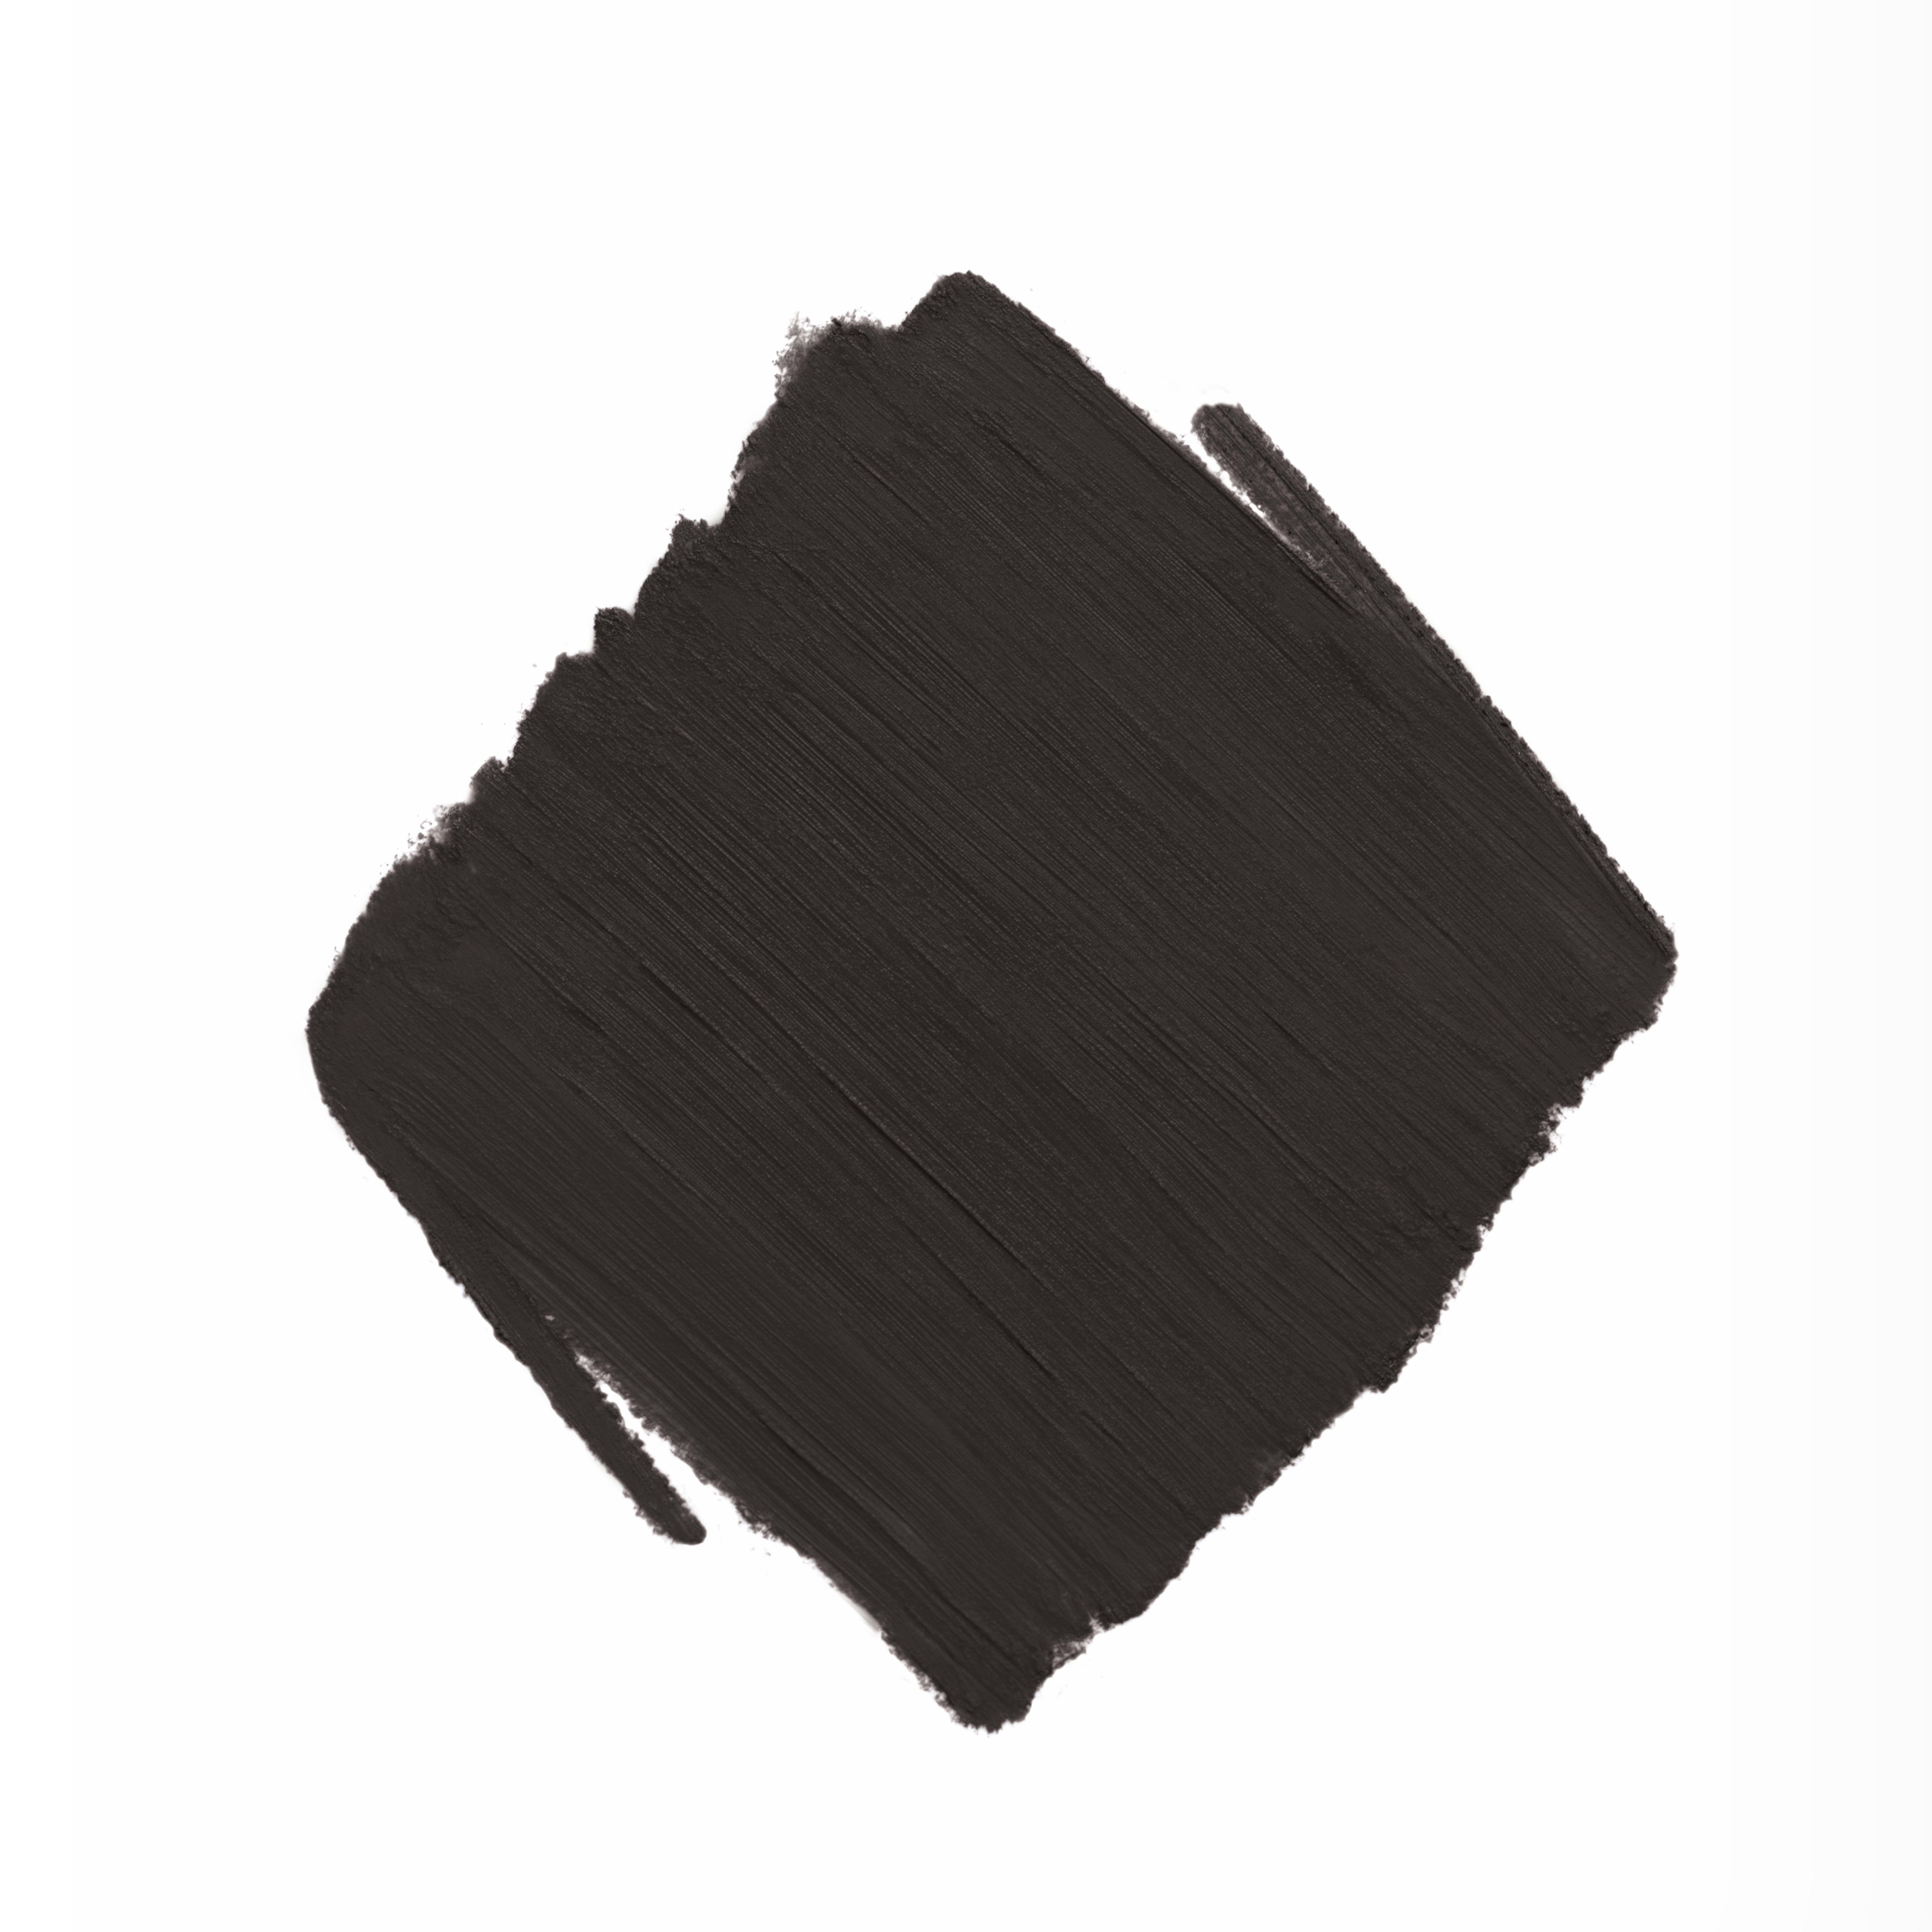 STYLO YEUX WATERPROOF - makeup - 0.01OZ. - Basic texture view